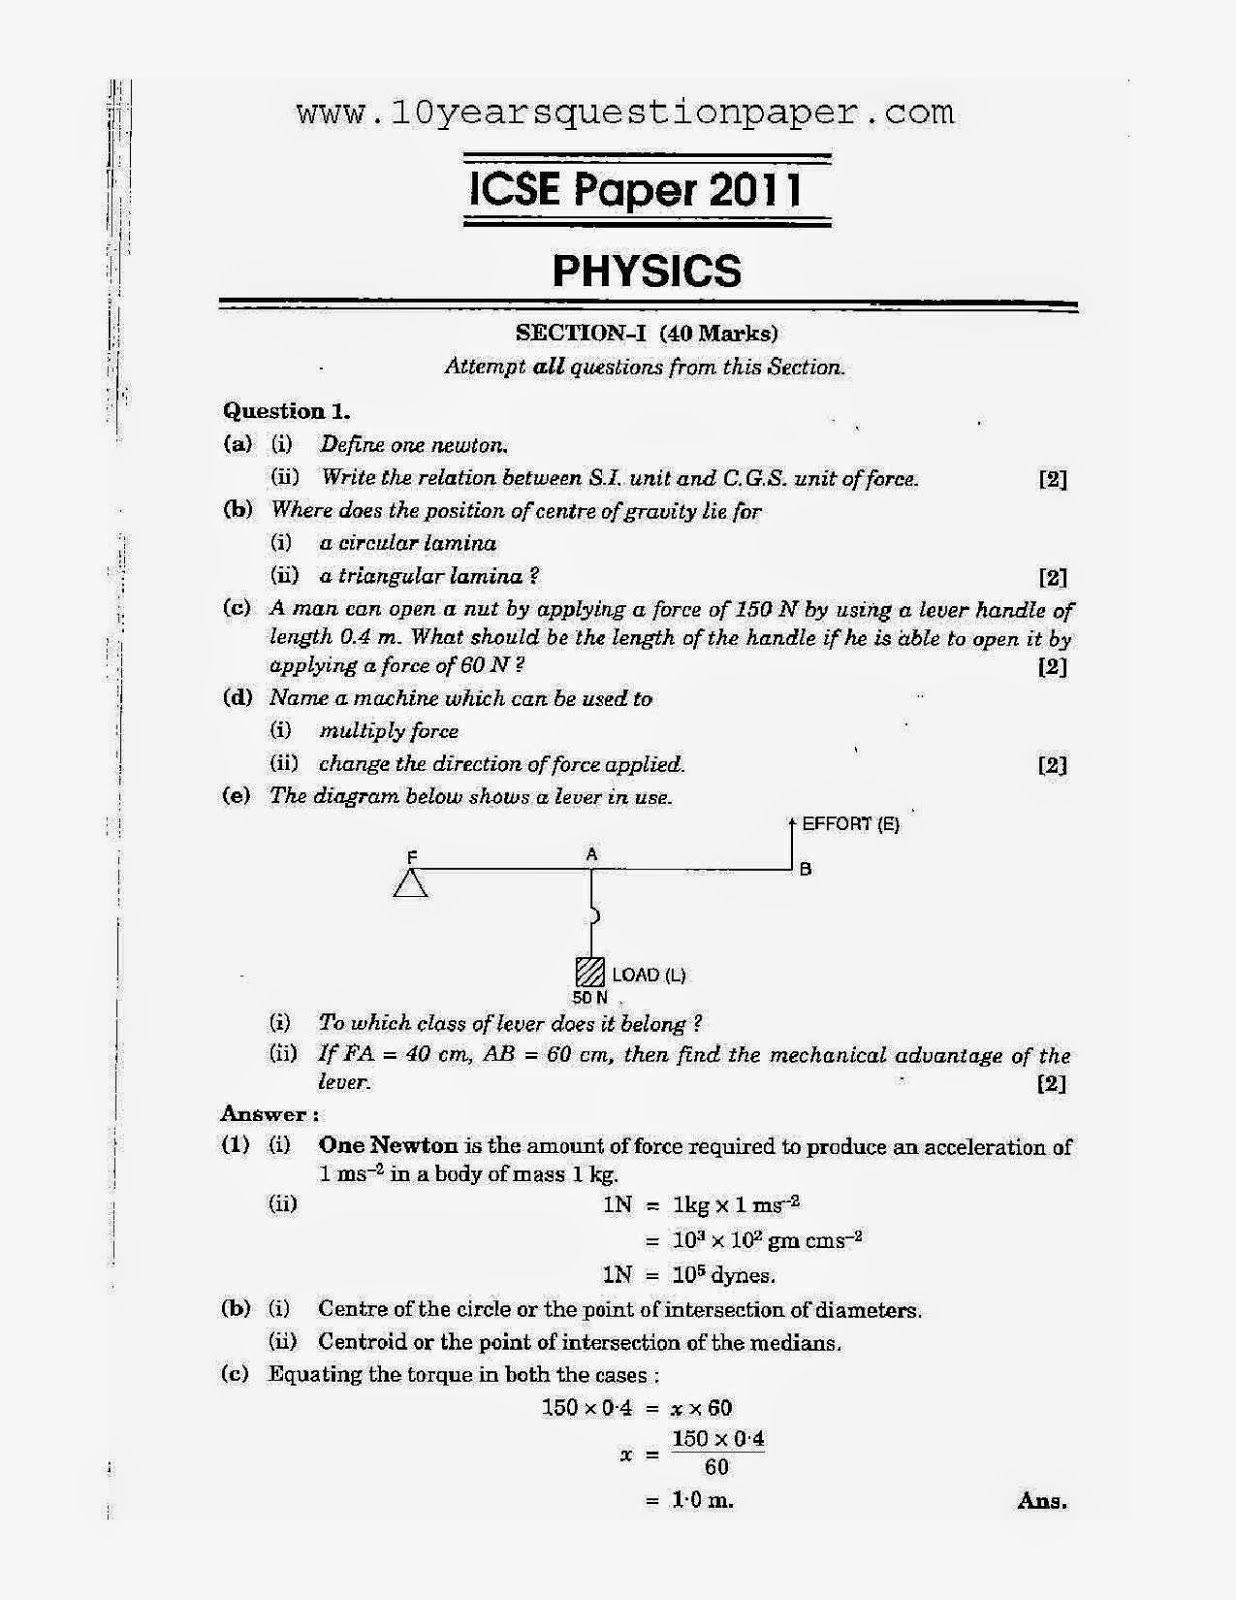 icse exam physics science paper board solved question icse 2011 class 10th science physics paper 1 question paper